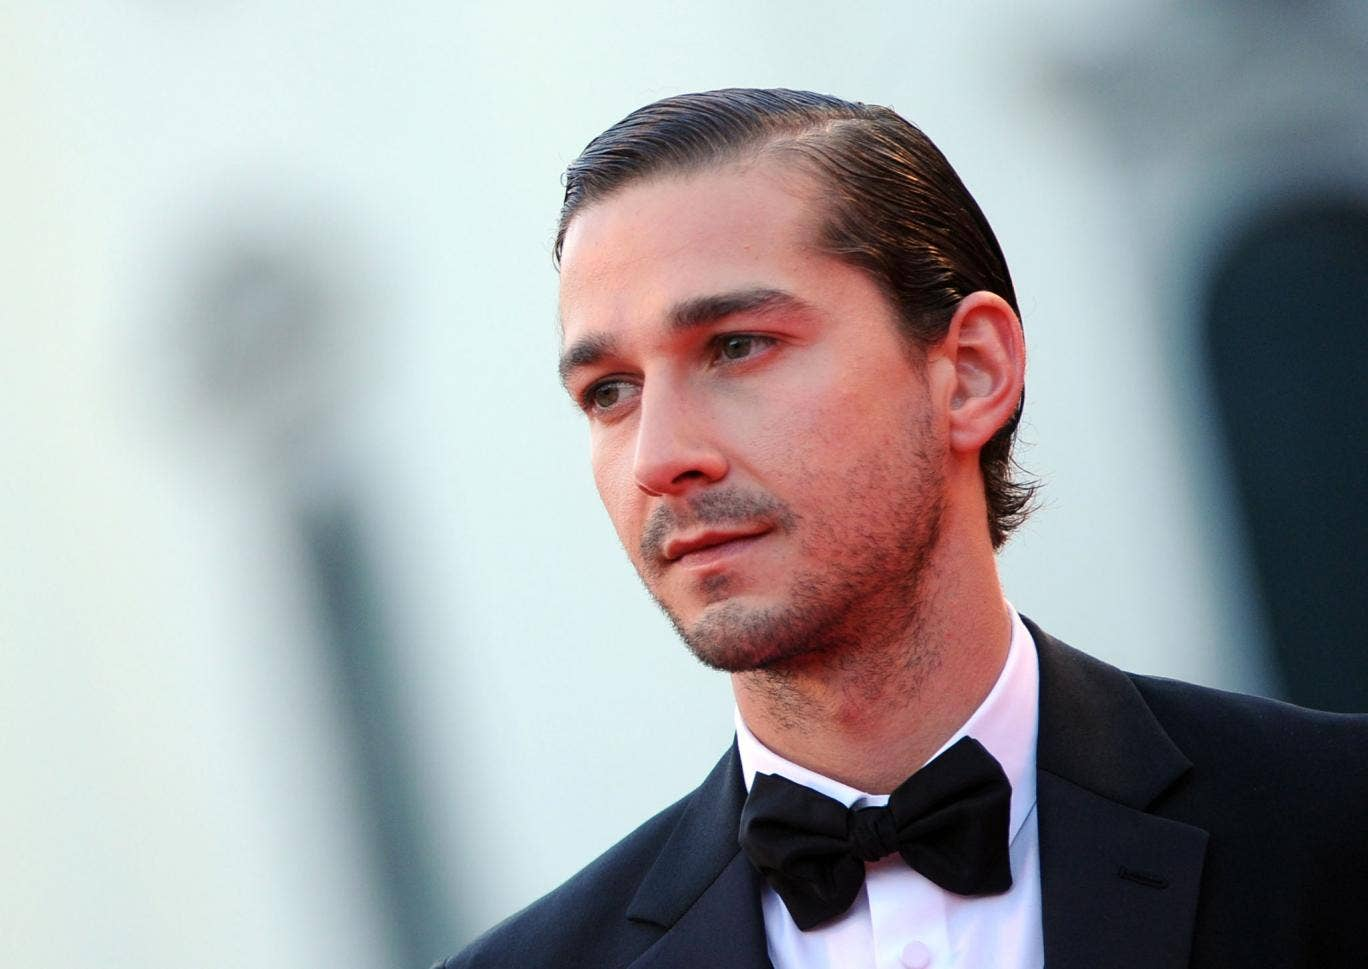 In the dog house: Shia LaBeouf has admitted failing to give accreditation to author Daniel Clowes